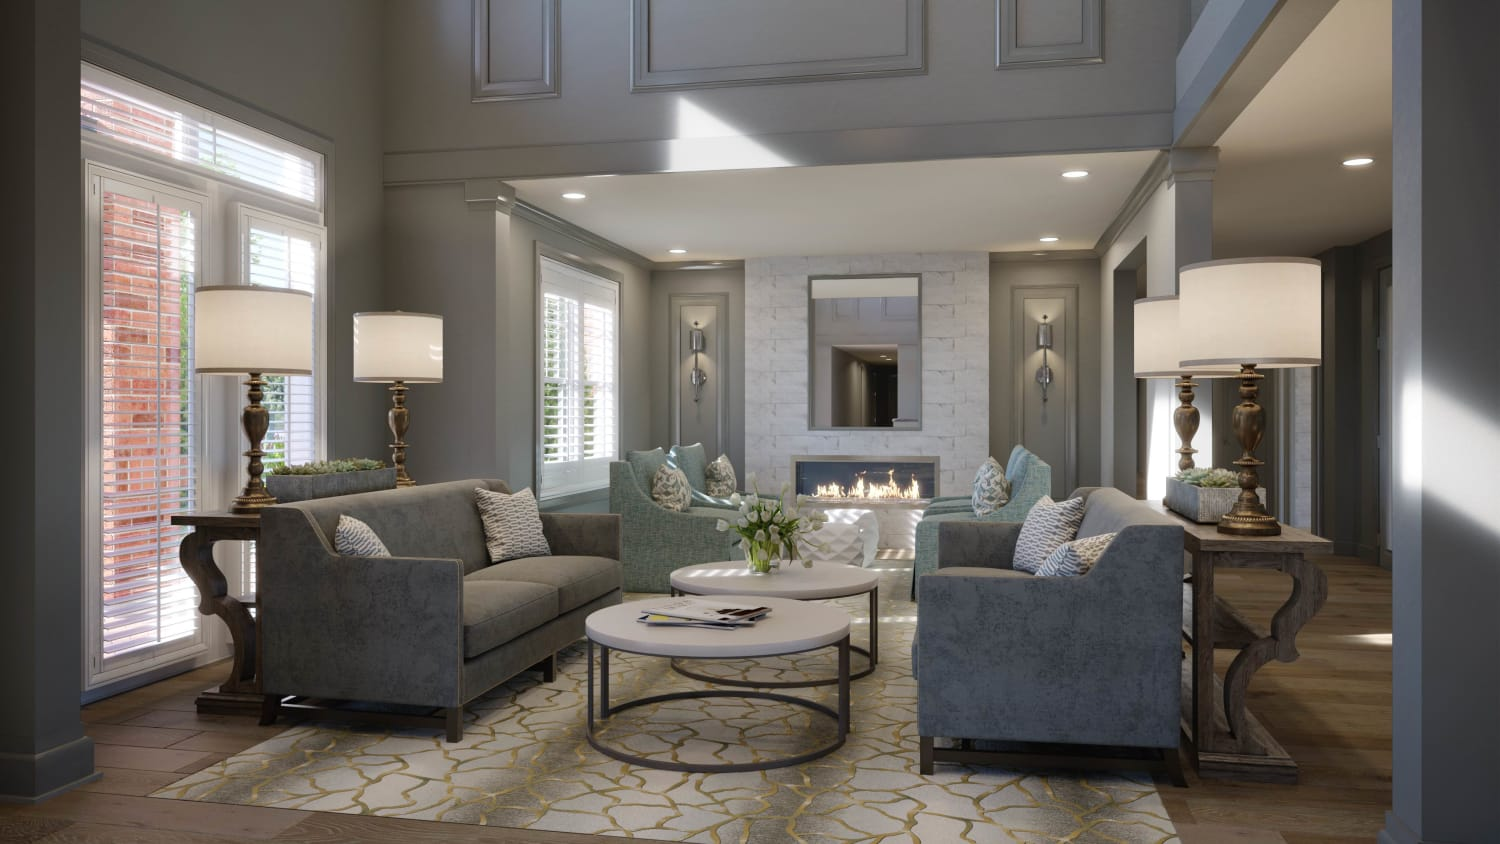 Rendering of Lounge at Avenida Cool Springs senior living apartments in Franklin, Tennessee